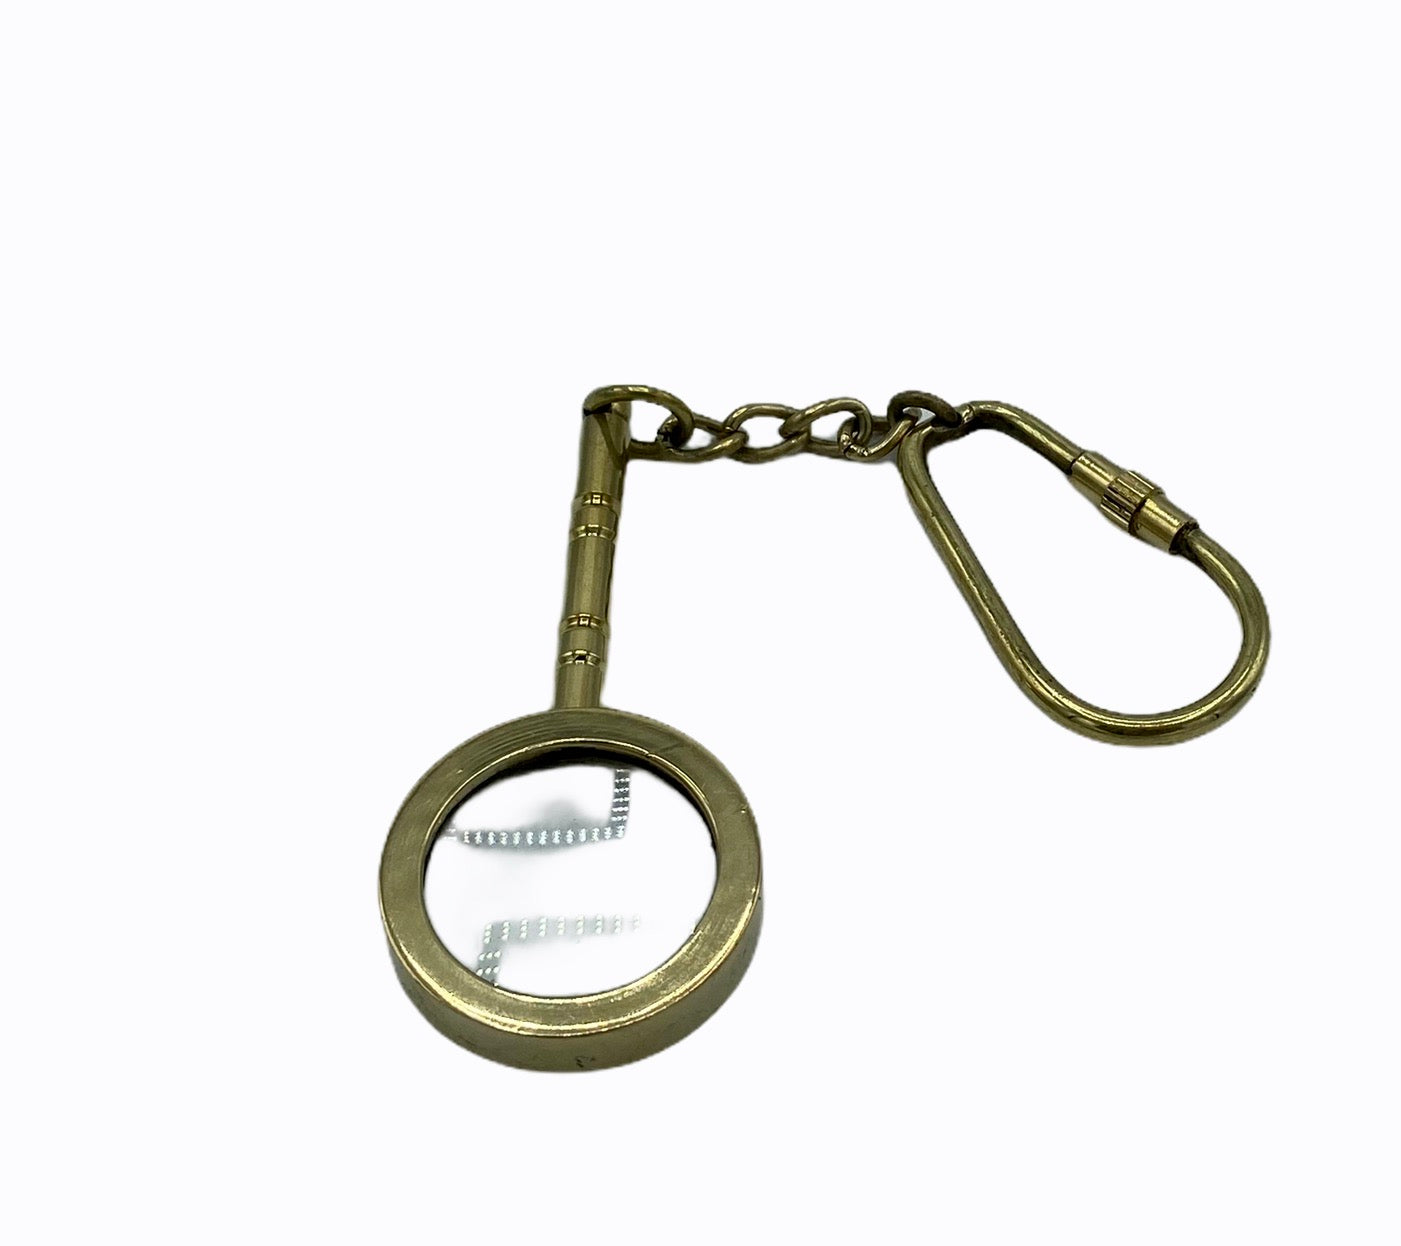 Brass Handle Magnifier Key Ring